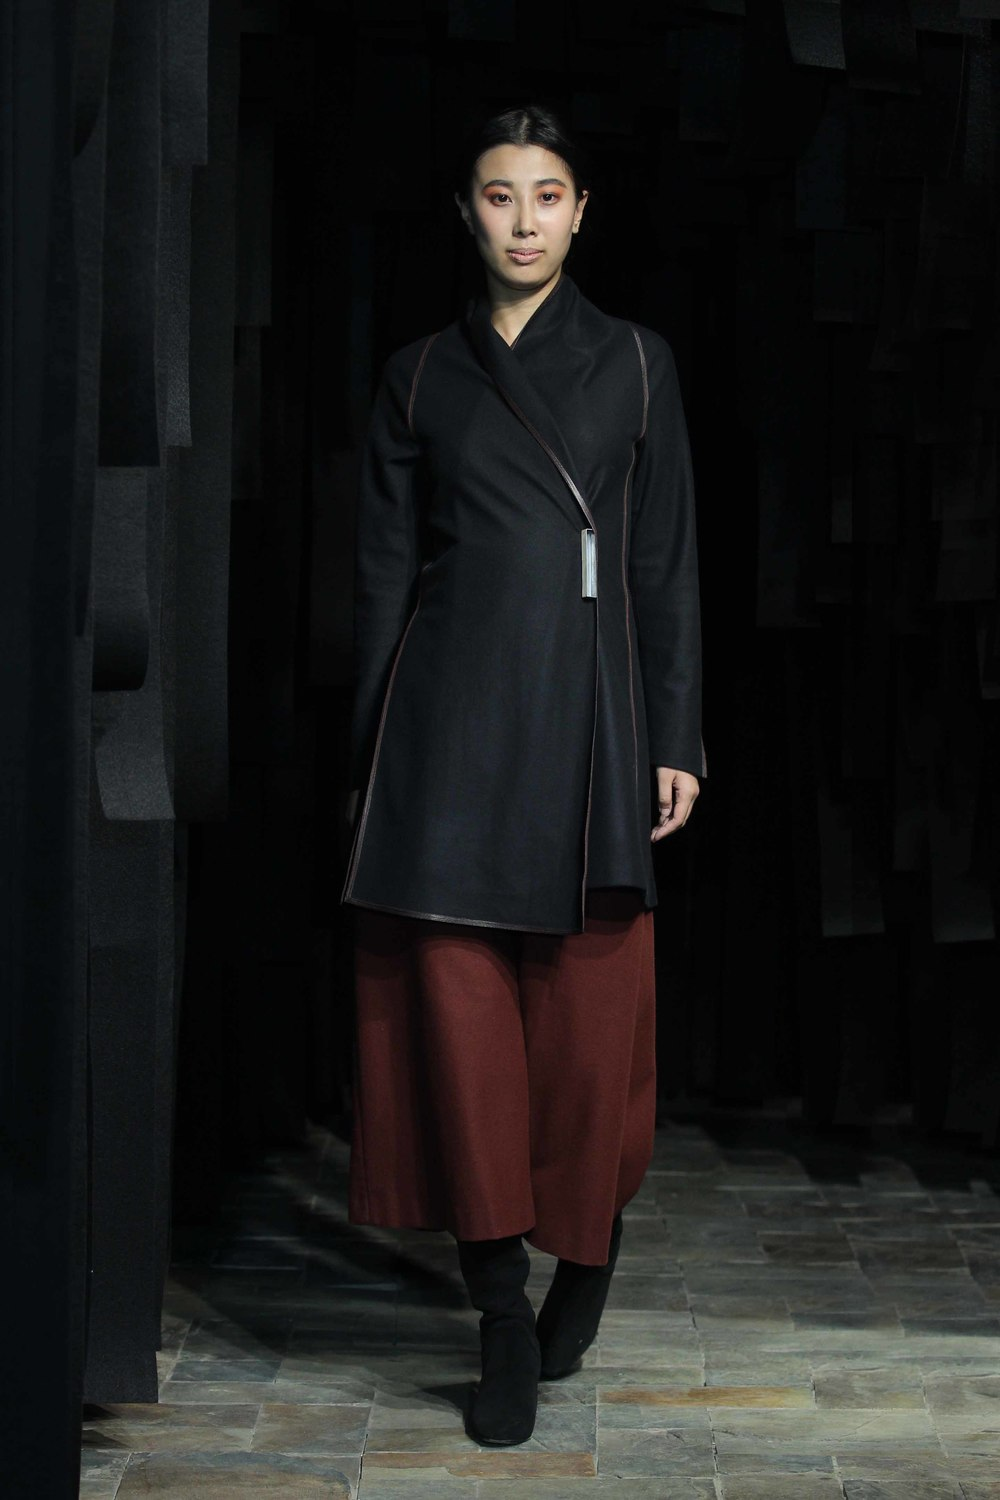 Long black woolen jacket with leather trim // rust colored, woolen flannel jersey 7/8 pants